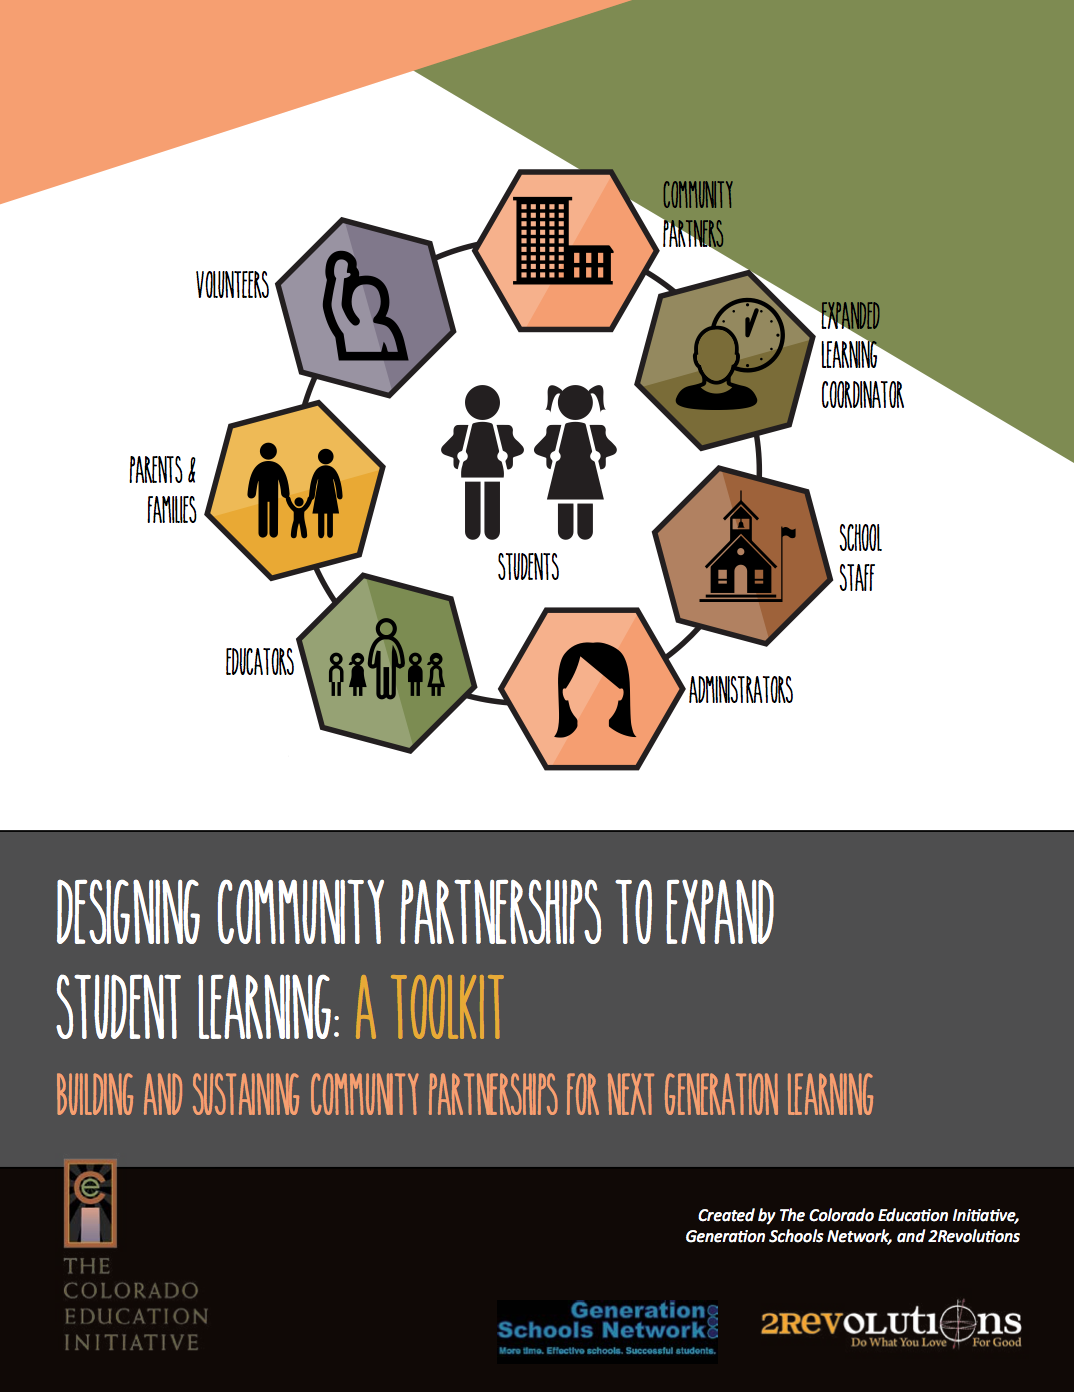 designing community partnerships to expand student learning, august 2015